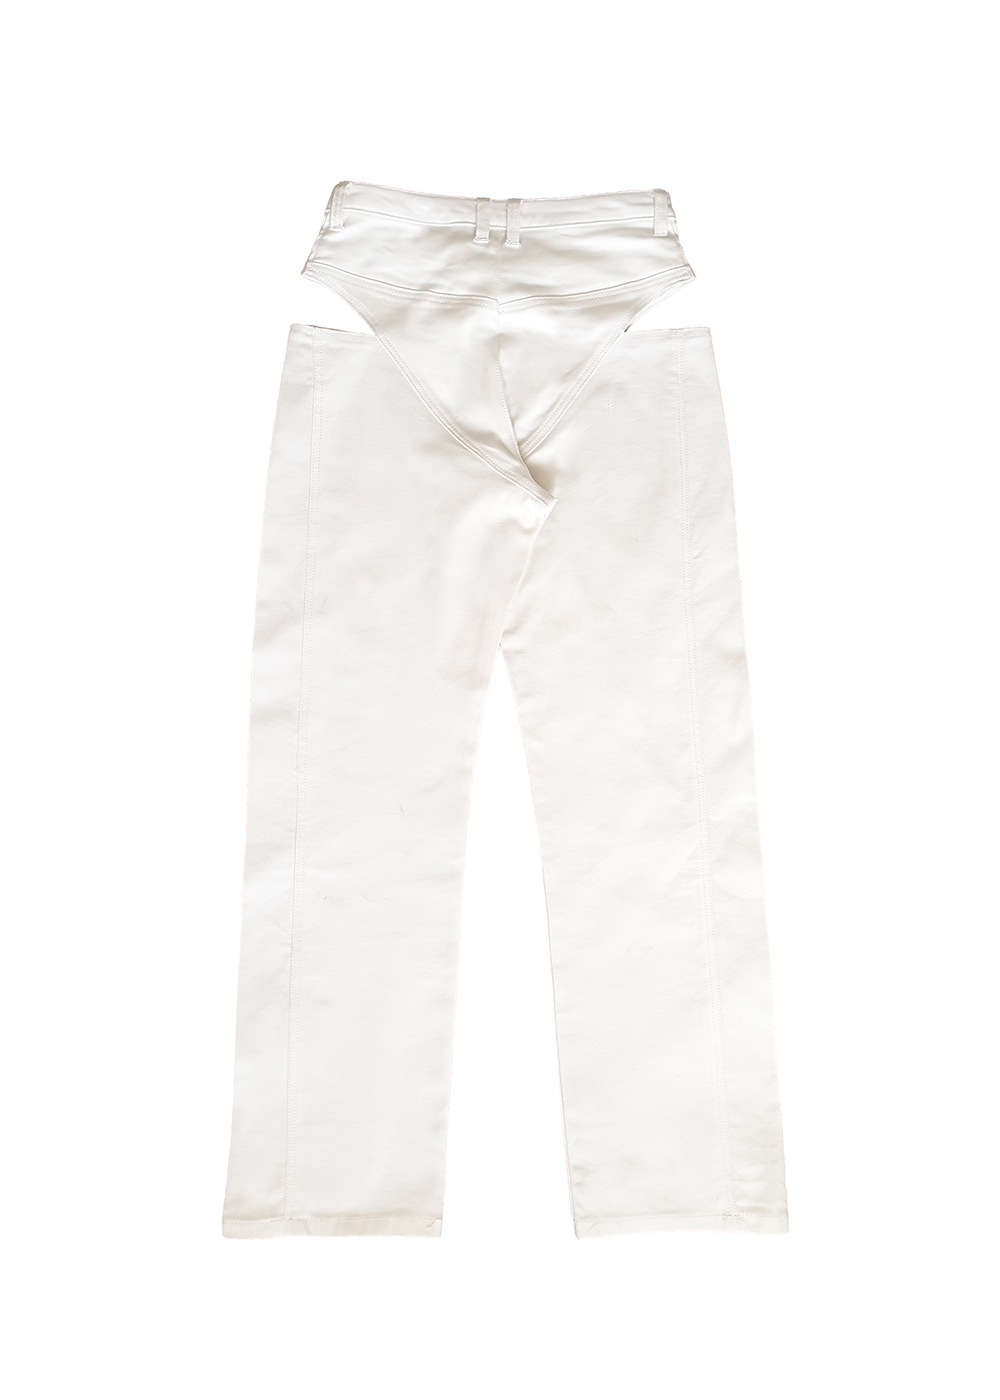 The Risqué Jean - White